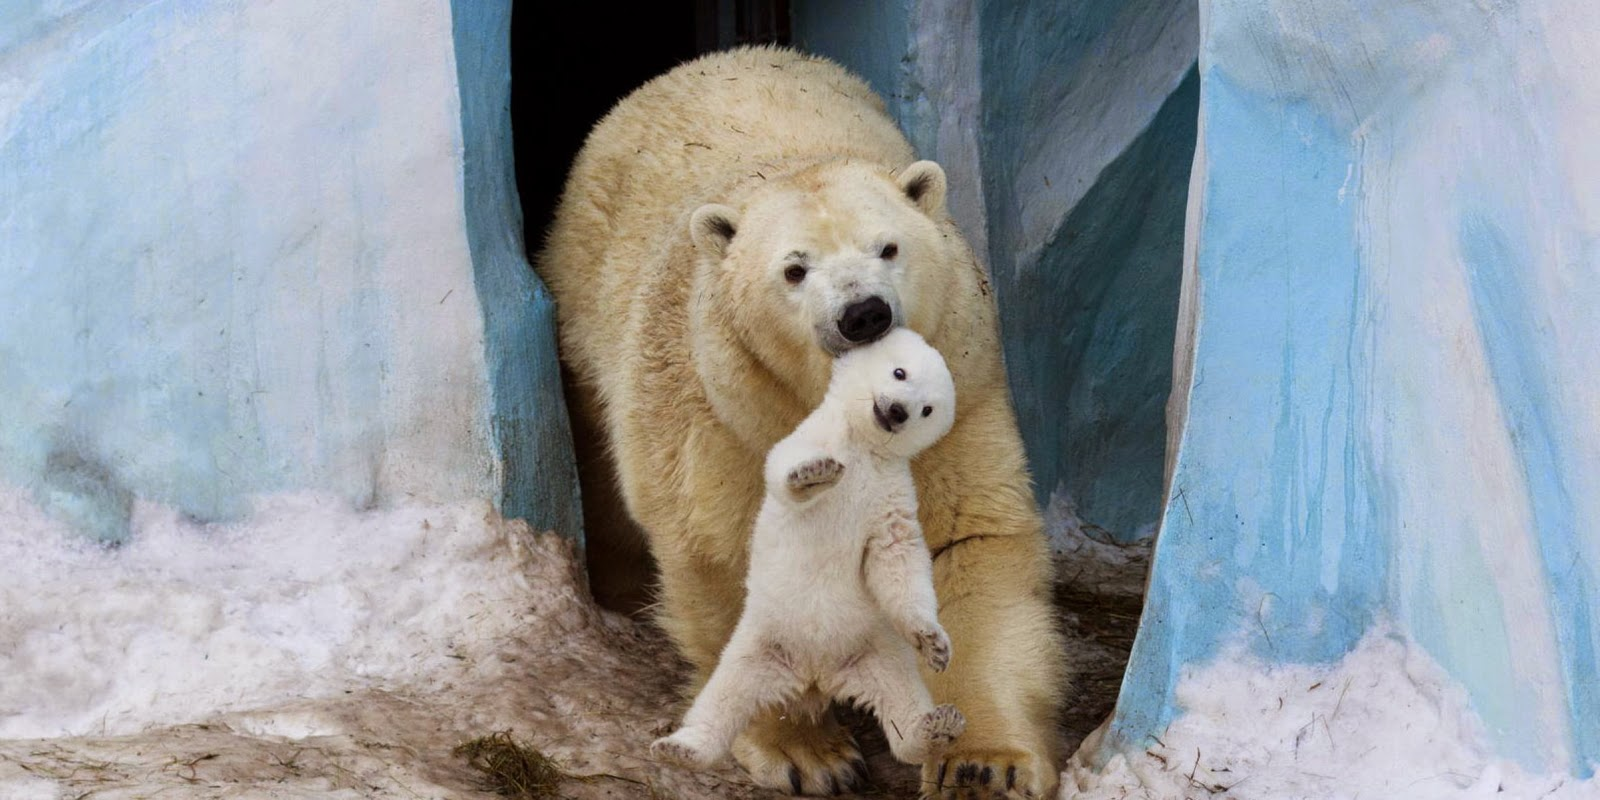 Of The Cutest Parenting Moments In The Animal Kingdom - 22 adorable parenting moments in the animal kingdom